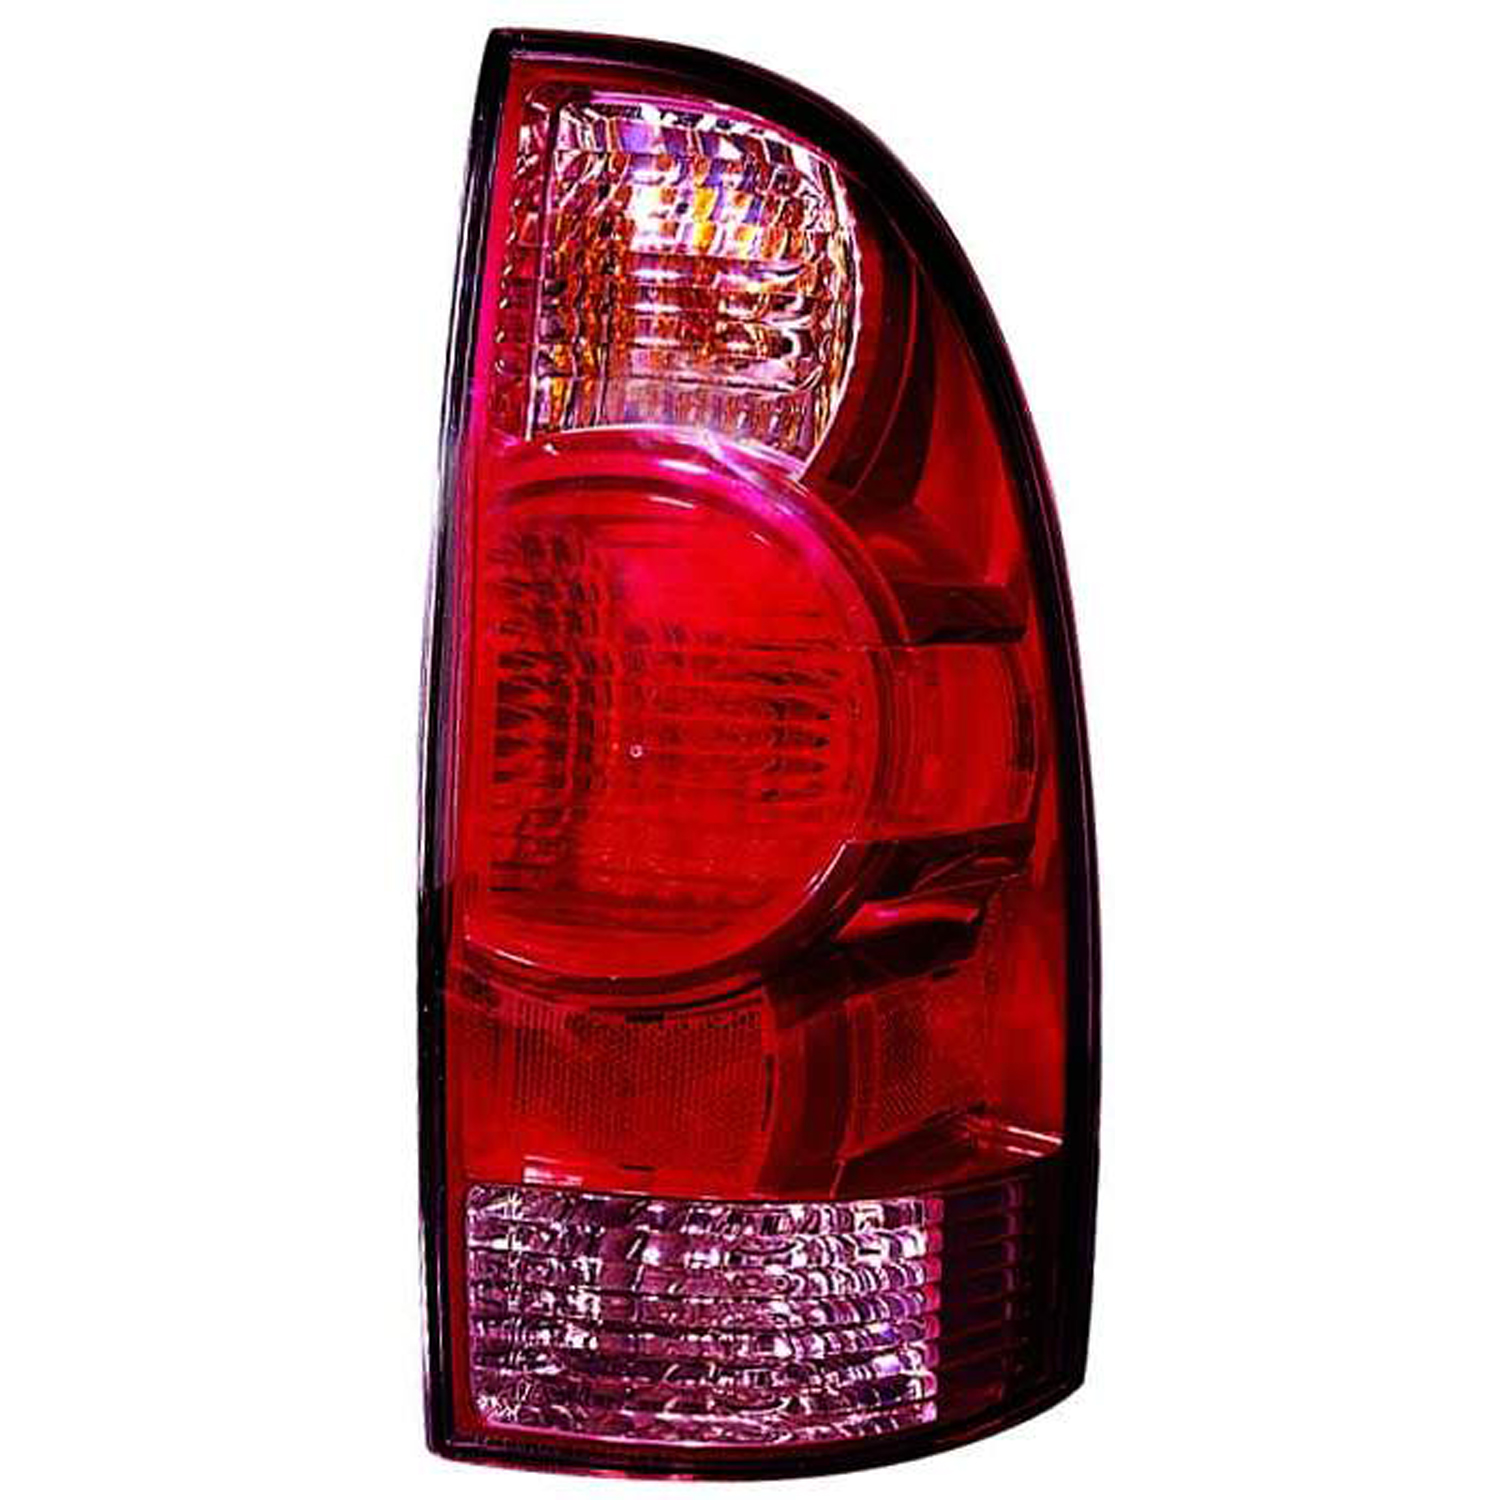 New Aftermarket Passenger Side Rear Tail Lamp Assembly 8155004150 NSF